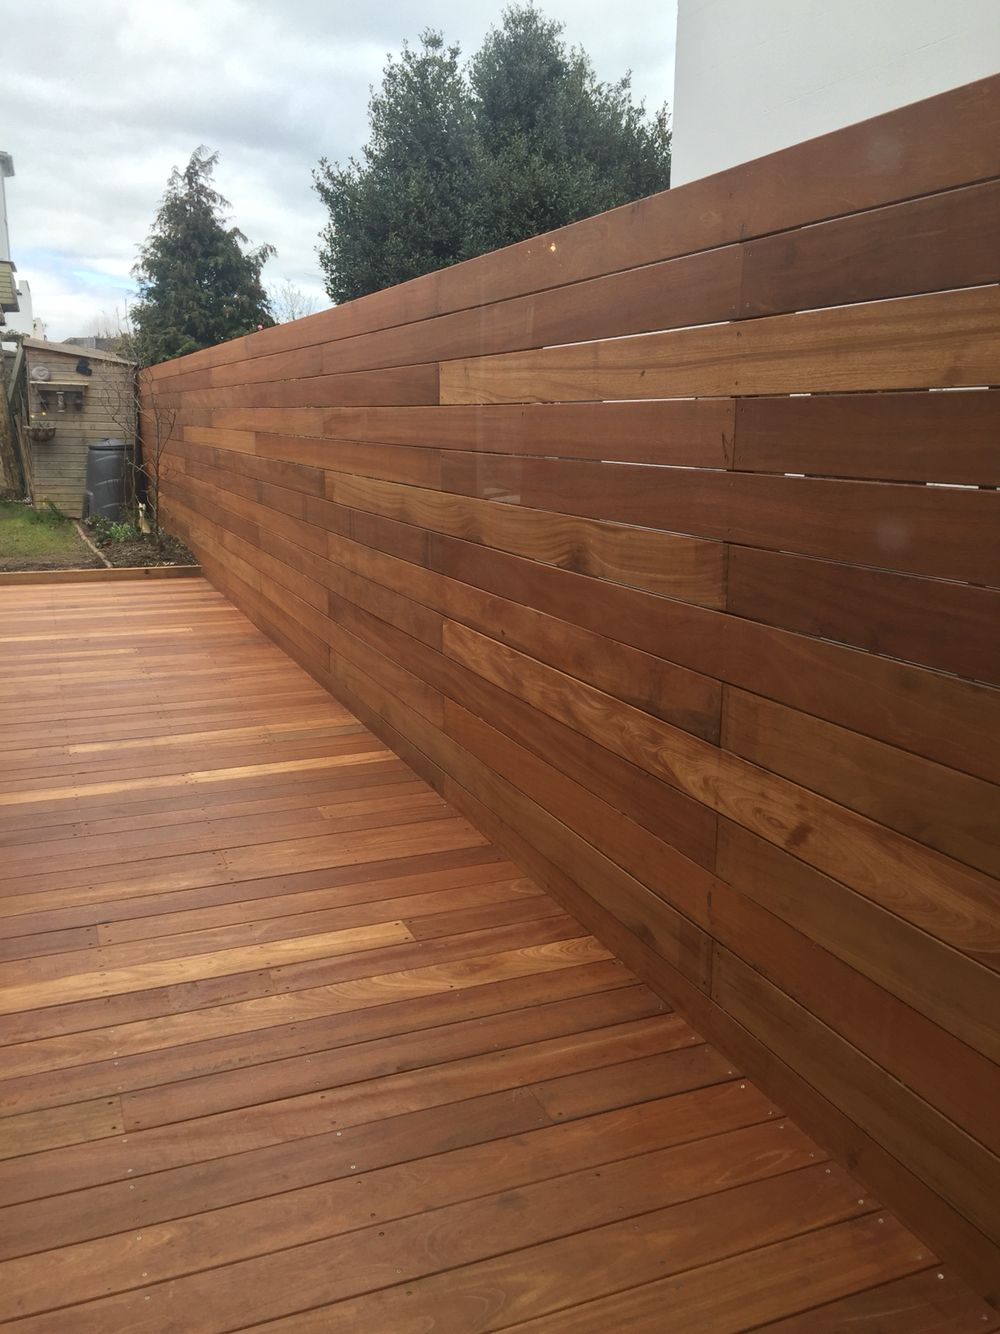 Horizontal Wood Fence Yellow Balau Deck Boards Finished With Cuprinol Natural Uv Deck Oil Fence Design Wood Fence Design Wood Fence